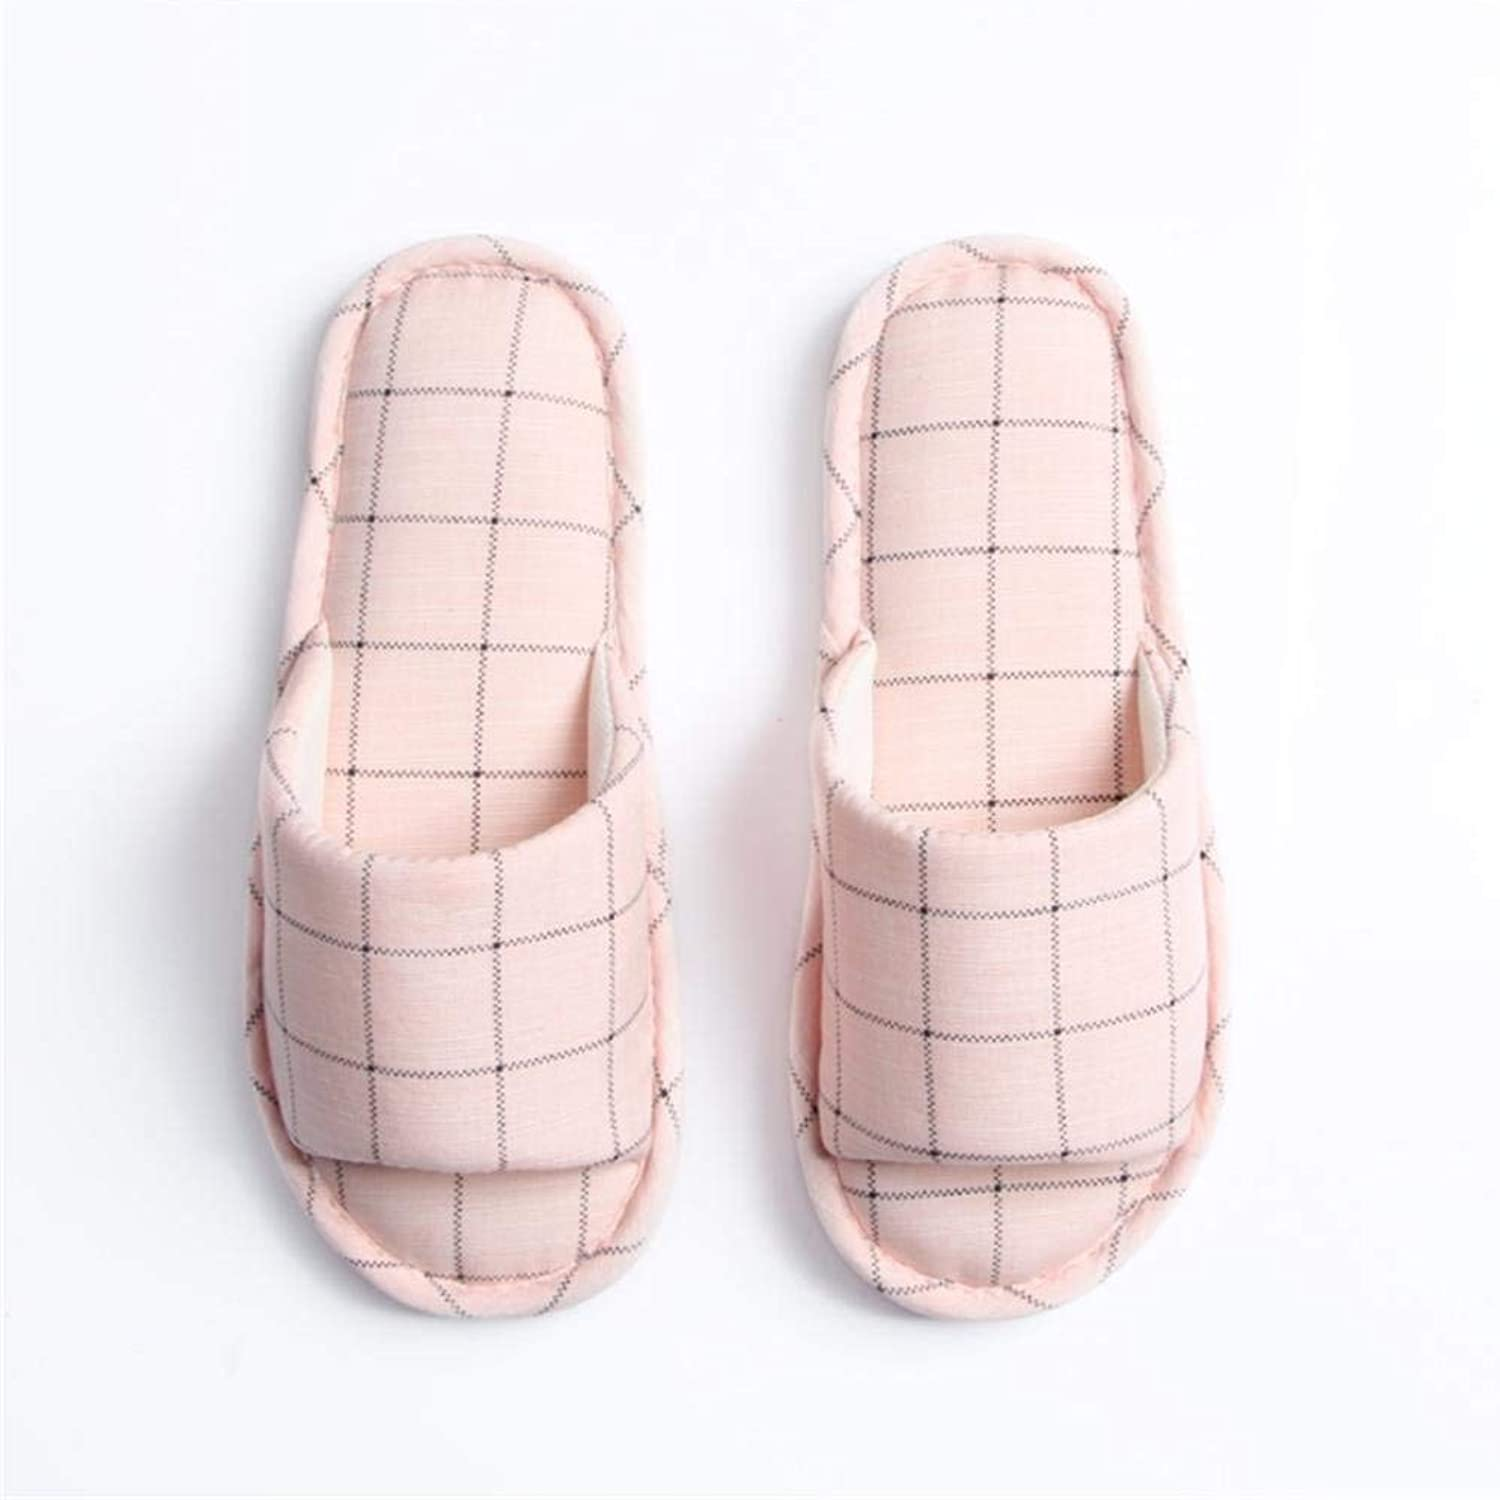 GouuoHi Womens Slippers Woman Casual Fashion Home Interior Non-Slip Plaid Pattern Pink Girlish Comfortable Cute Breathable Female Indoor Slippers